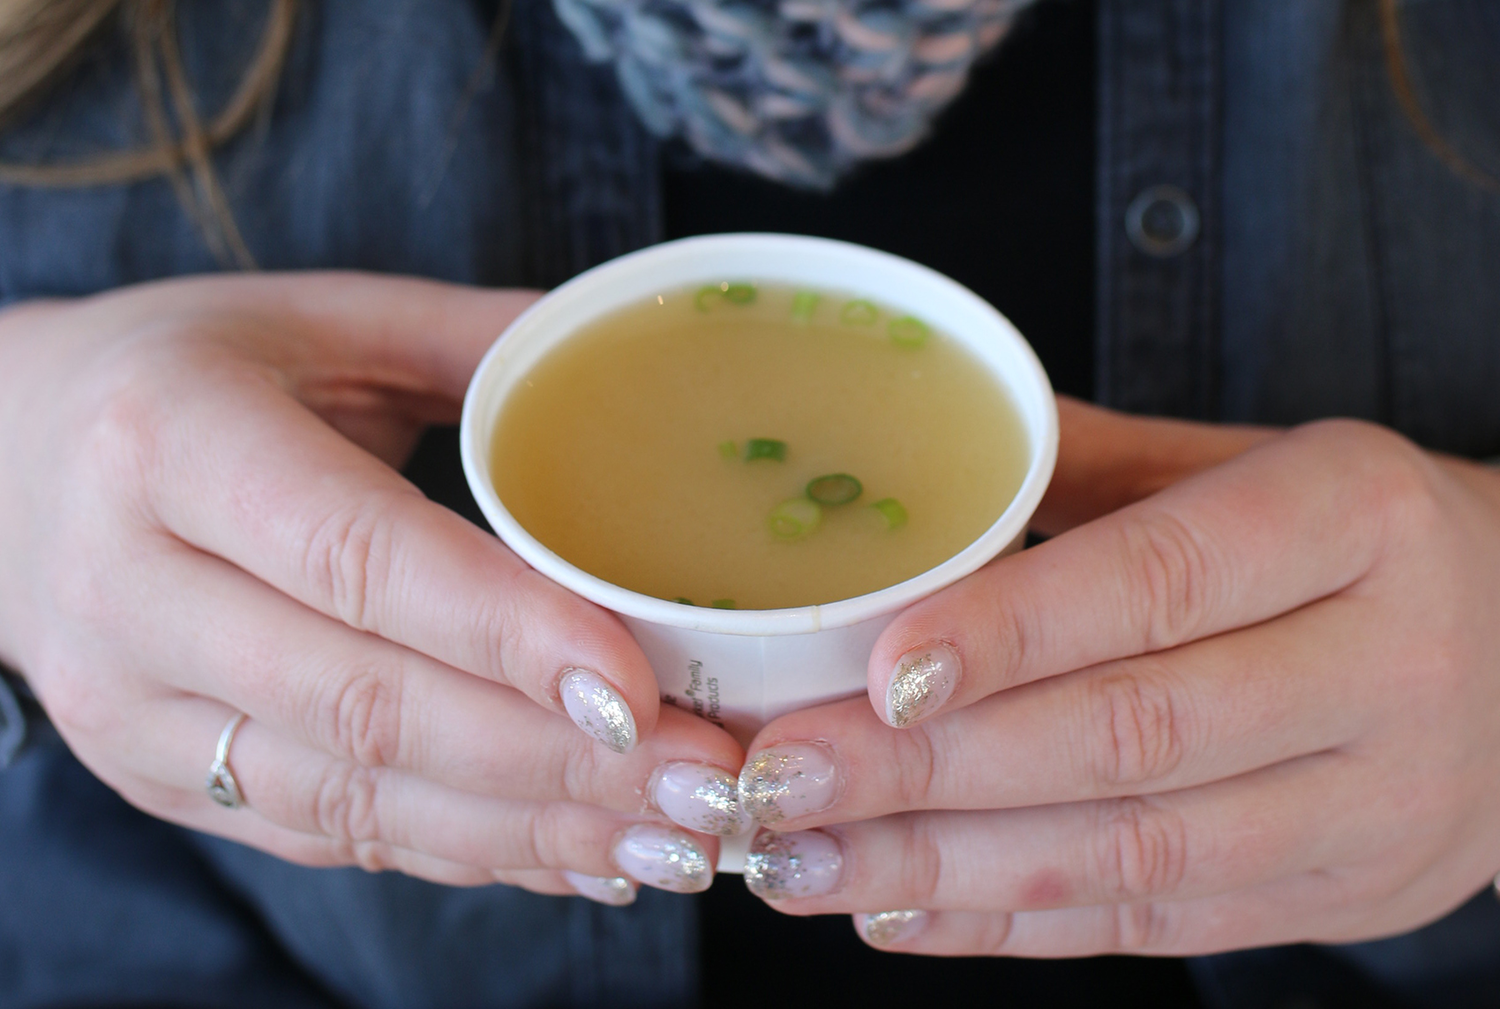 hands holding soup